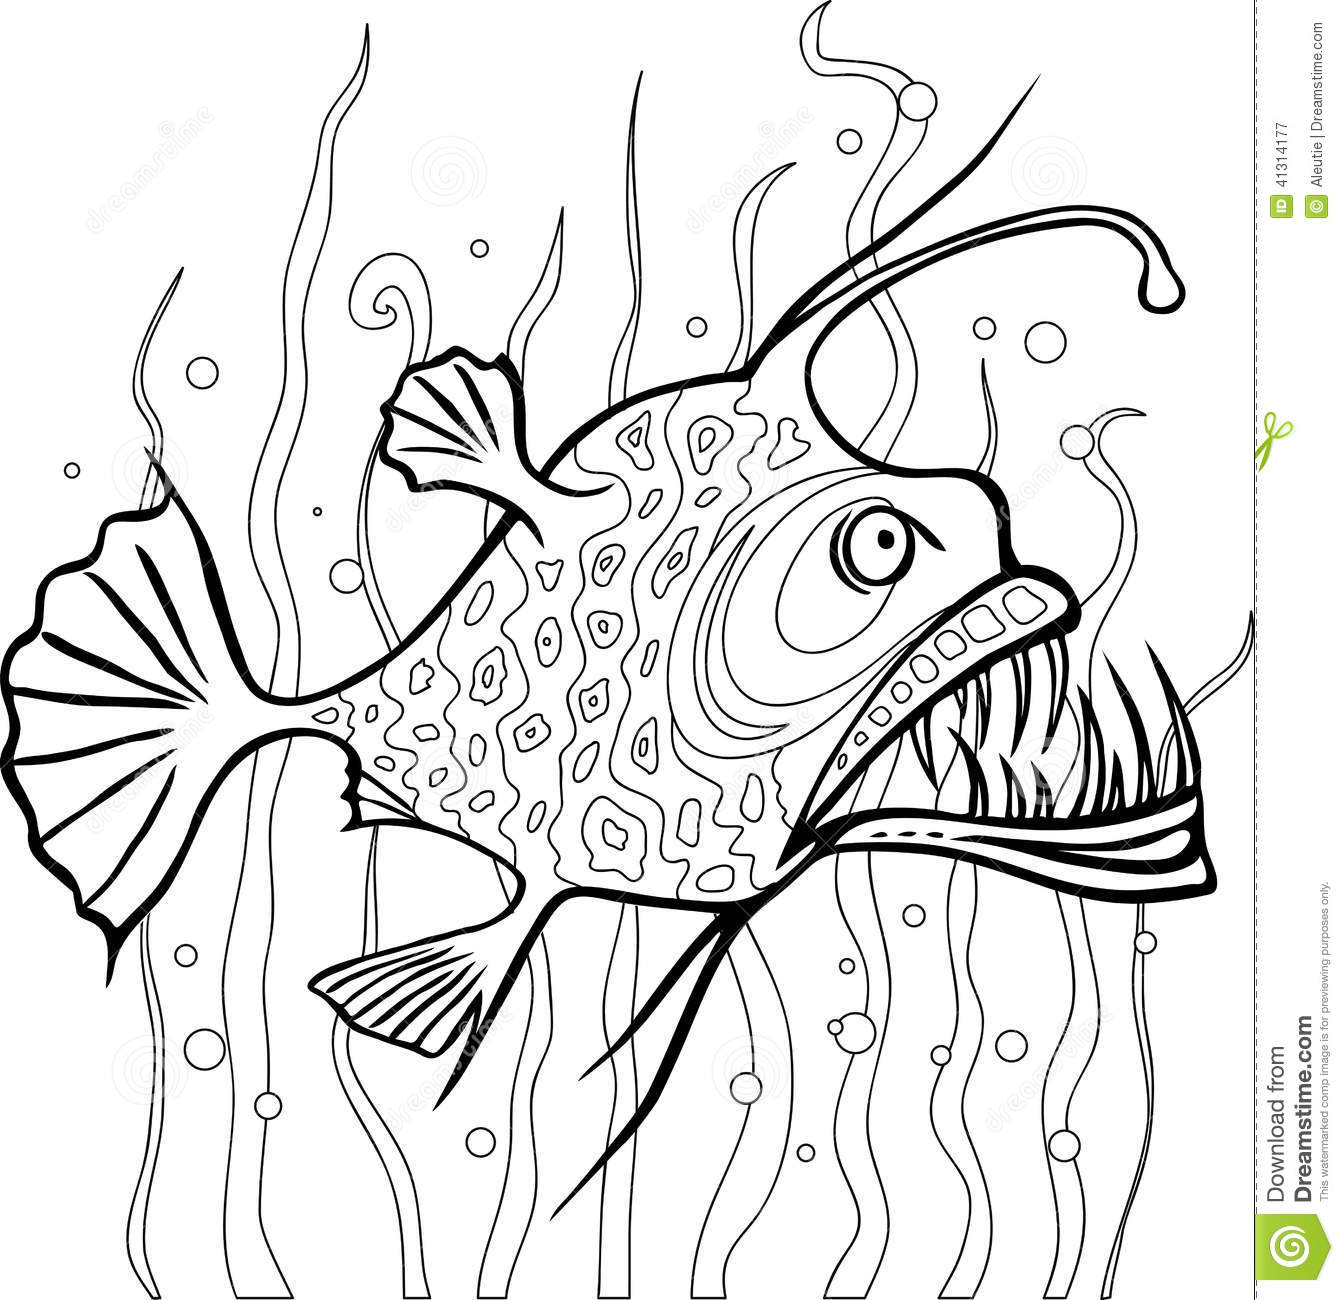 Line Drawing Of Water Animals : Anglerfish coloring page stock vector illustration of